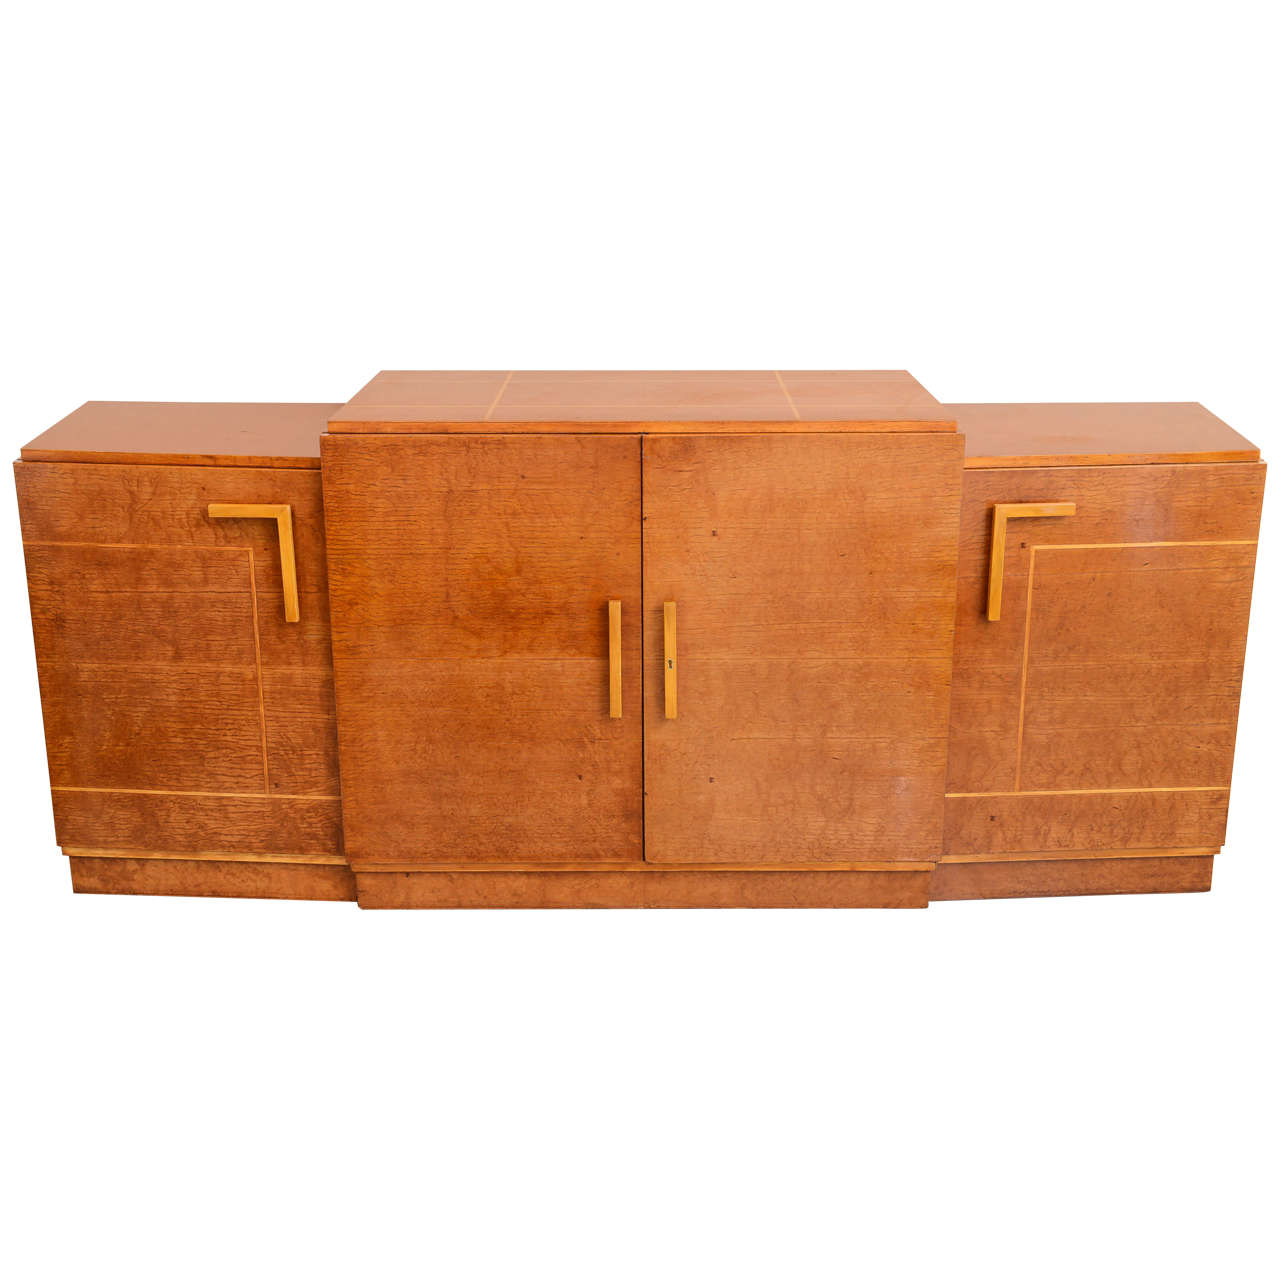 late art deco birds eye maple and maple inlaid credenza eli jacques kahn 1 art deco office credenza